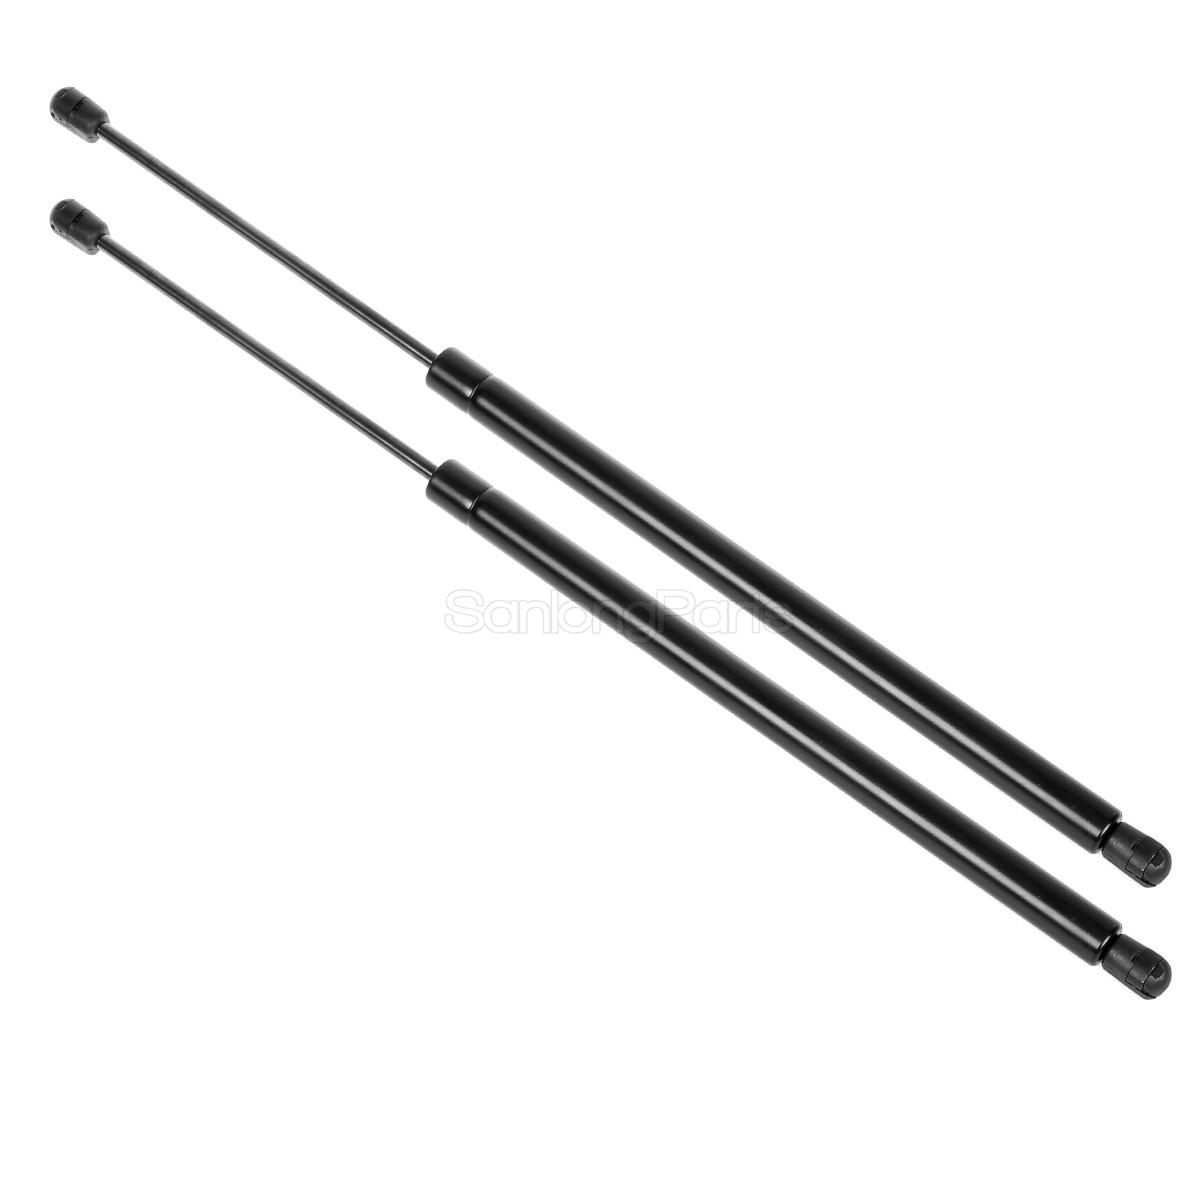 2pcs 4593 Rear Liftgate Gas Charged Lift Support For Ford